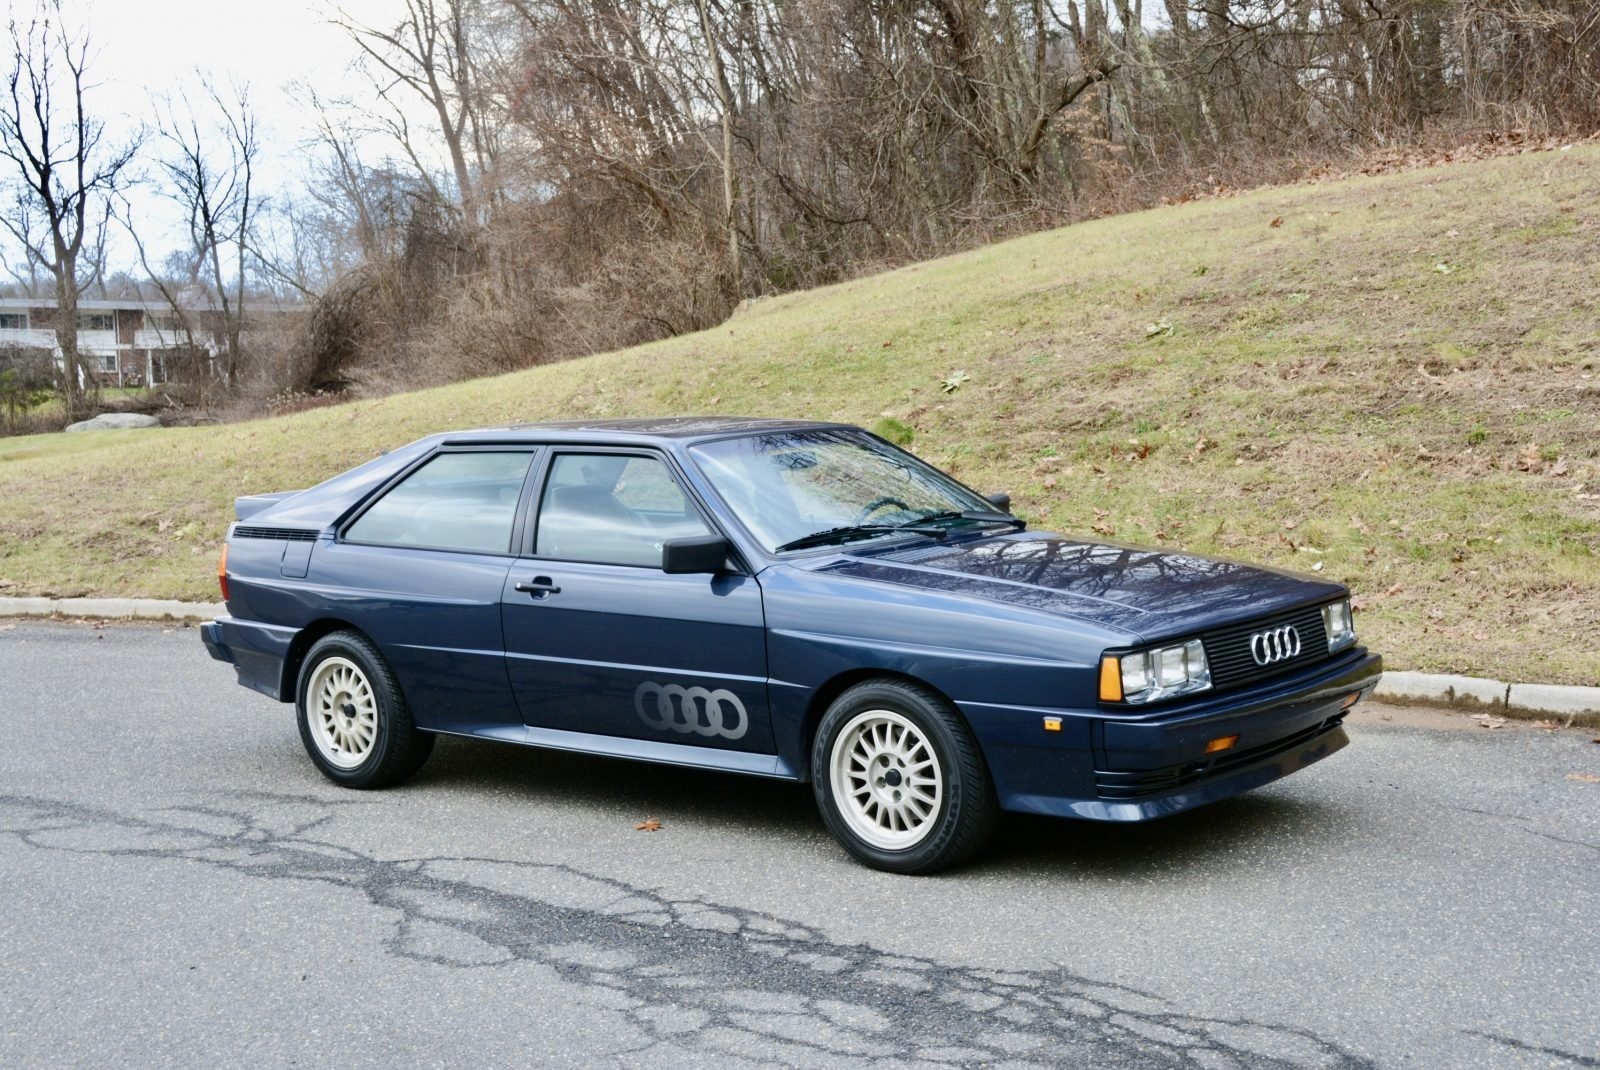 1985 Audi UR quattro Coupe Manual Rare 1 of 73 + Blue $55.9k For Sale (picture 1 of 6)